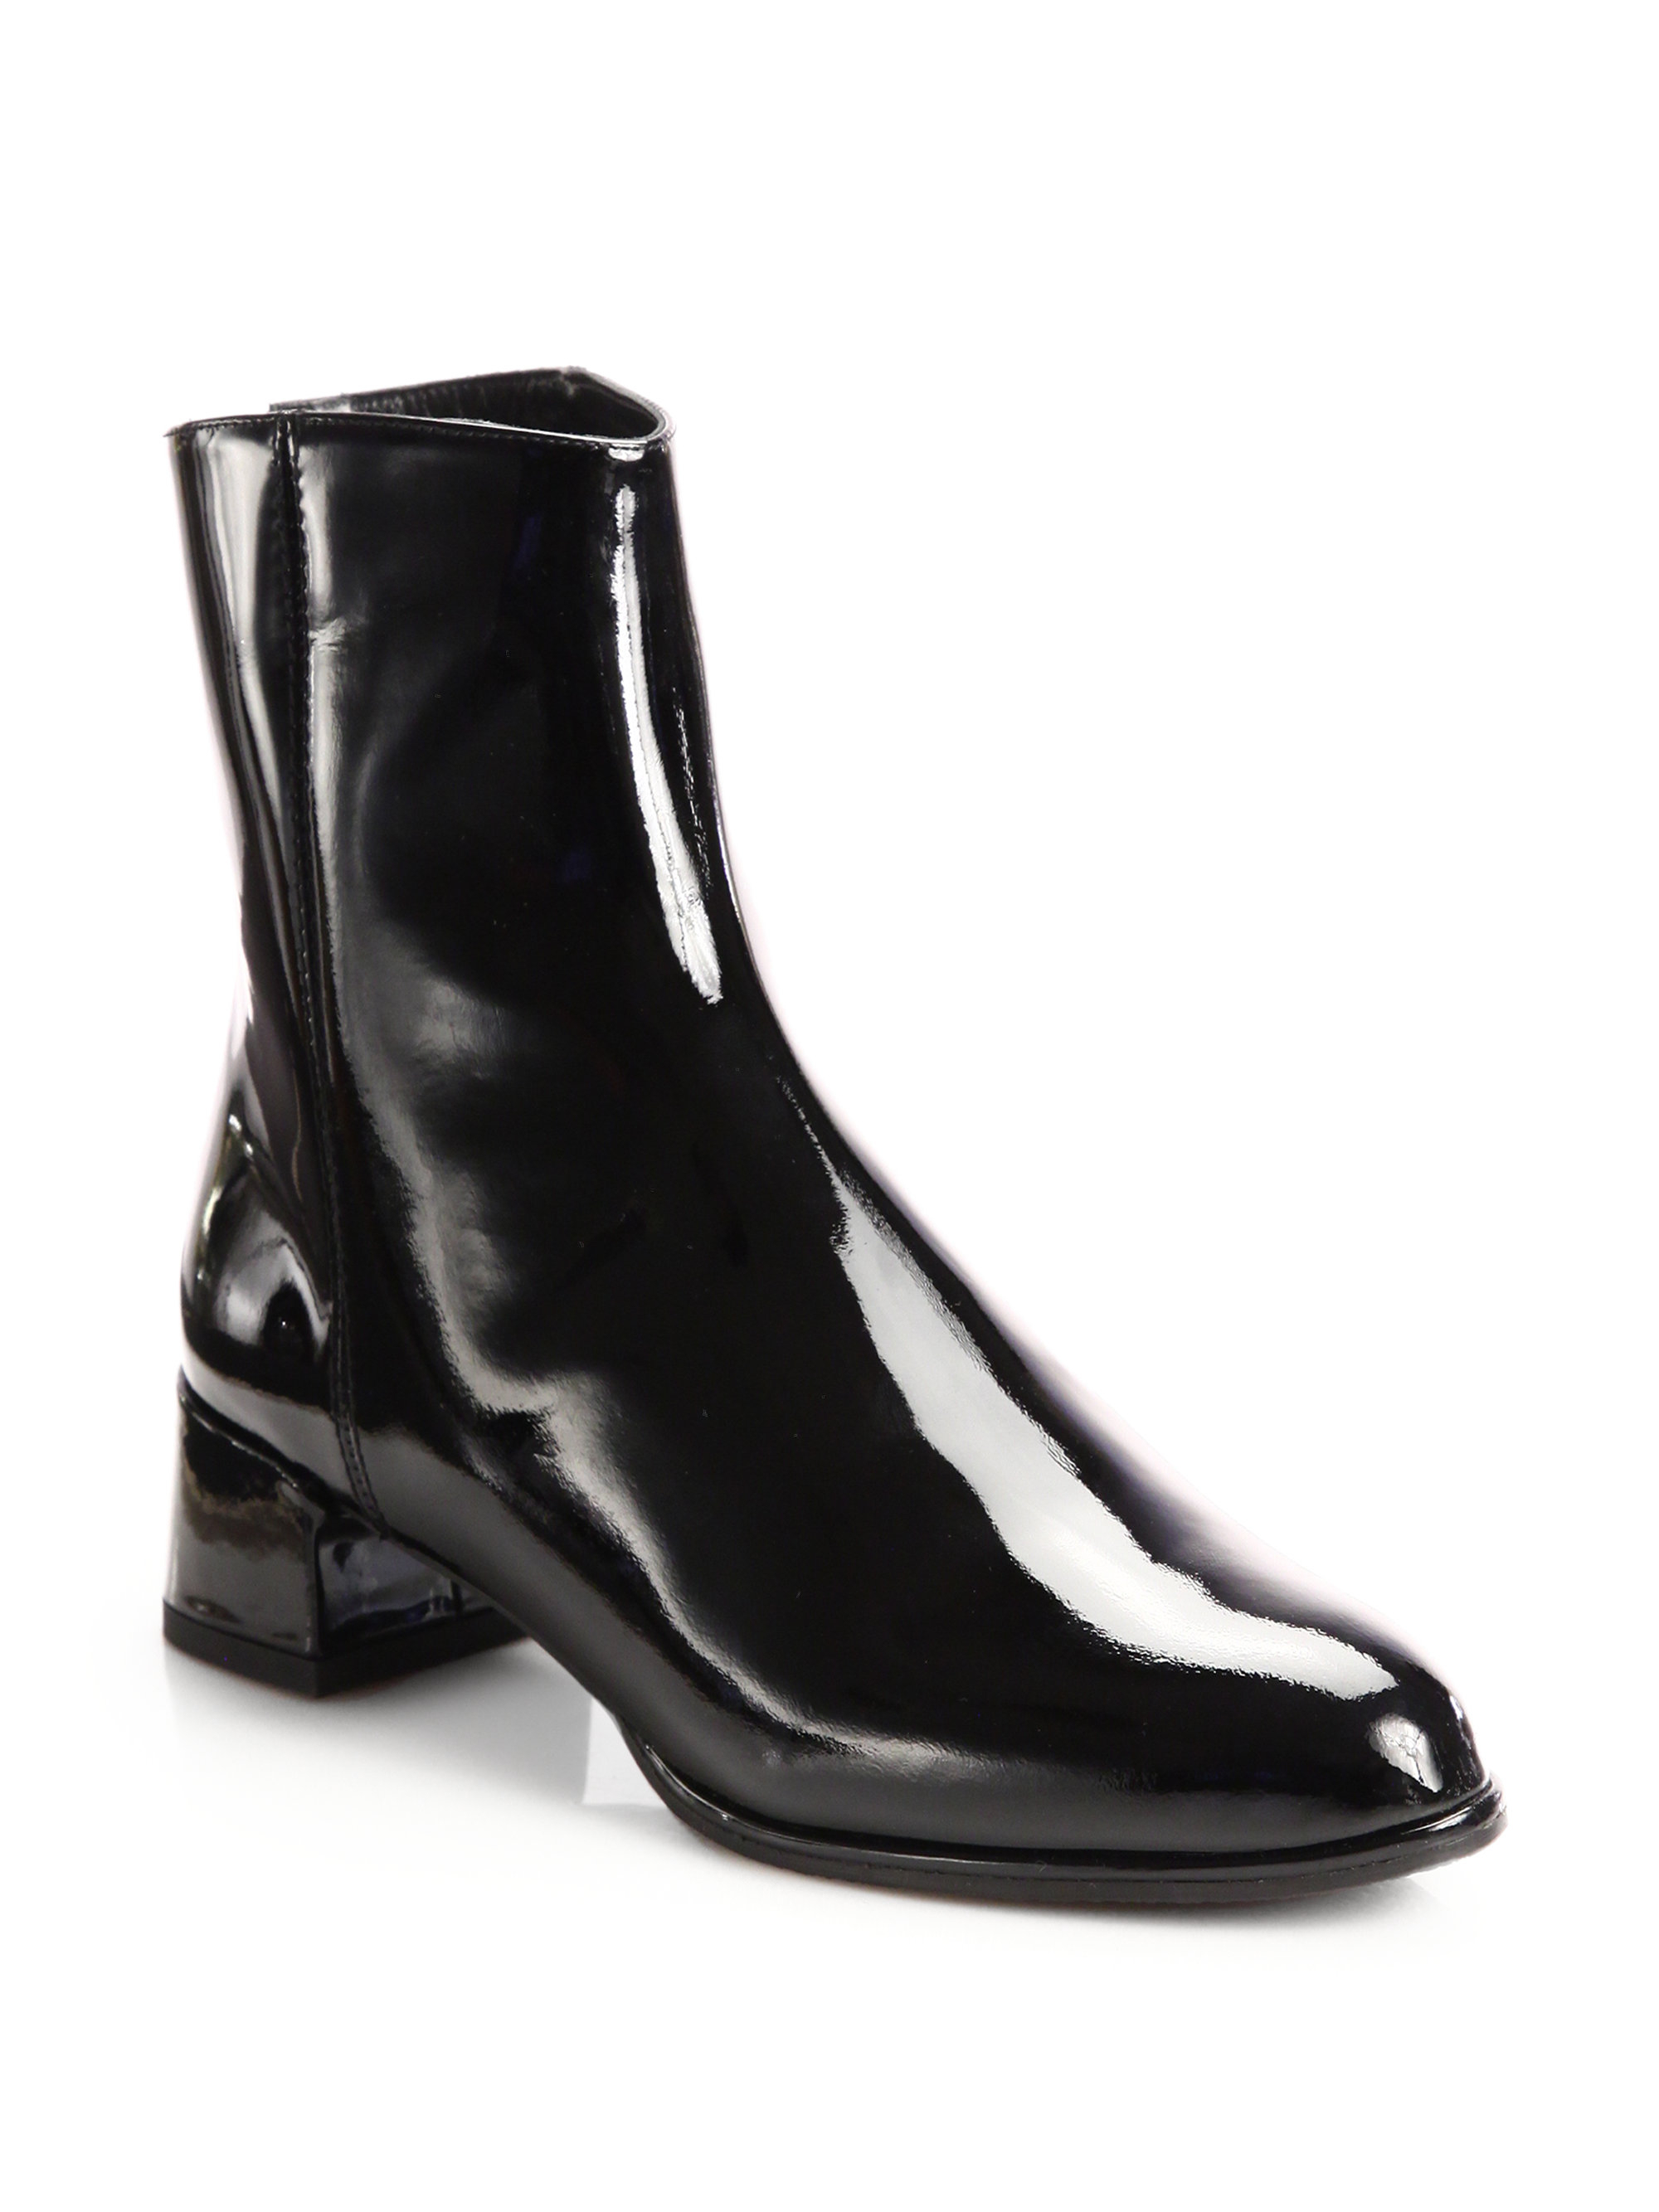 Stuart weitzman Patent Leather Ankle Boots in Black | Lyst